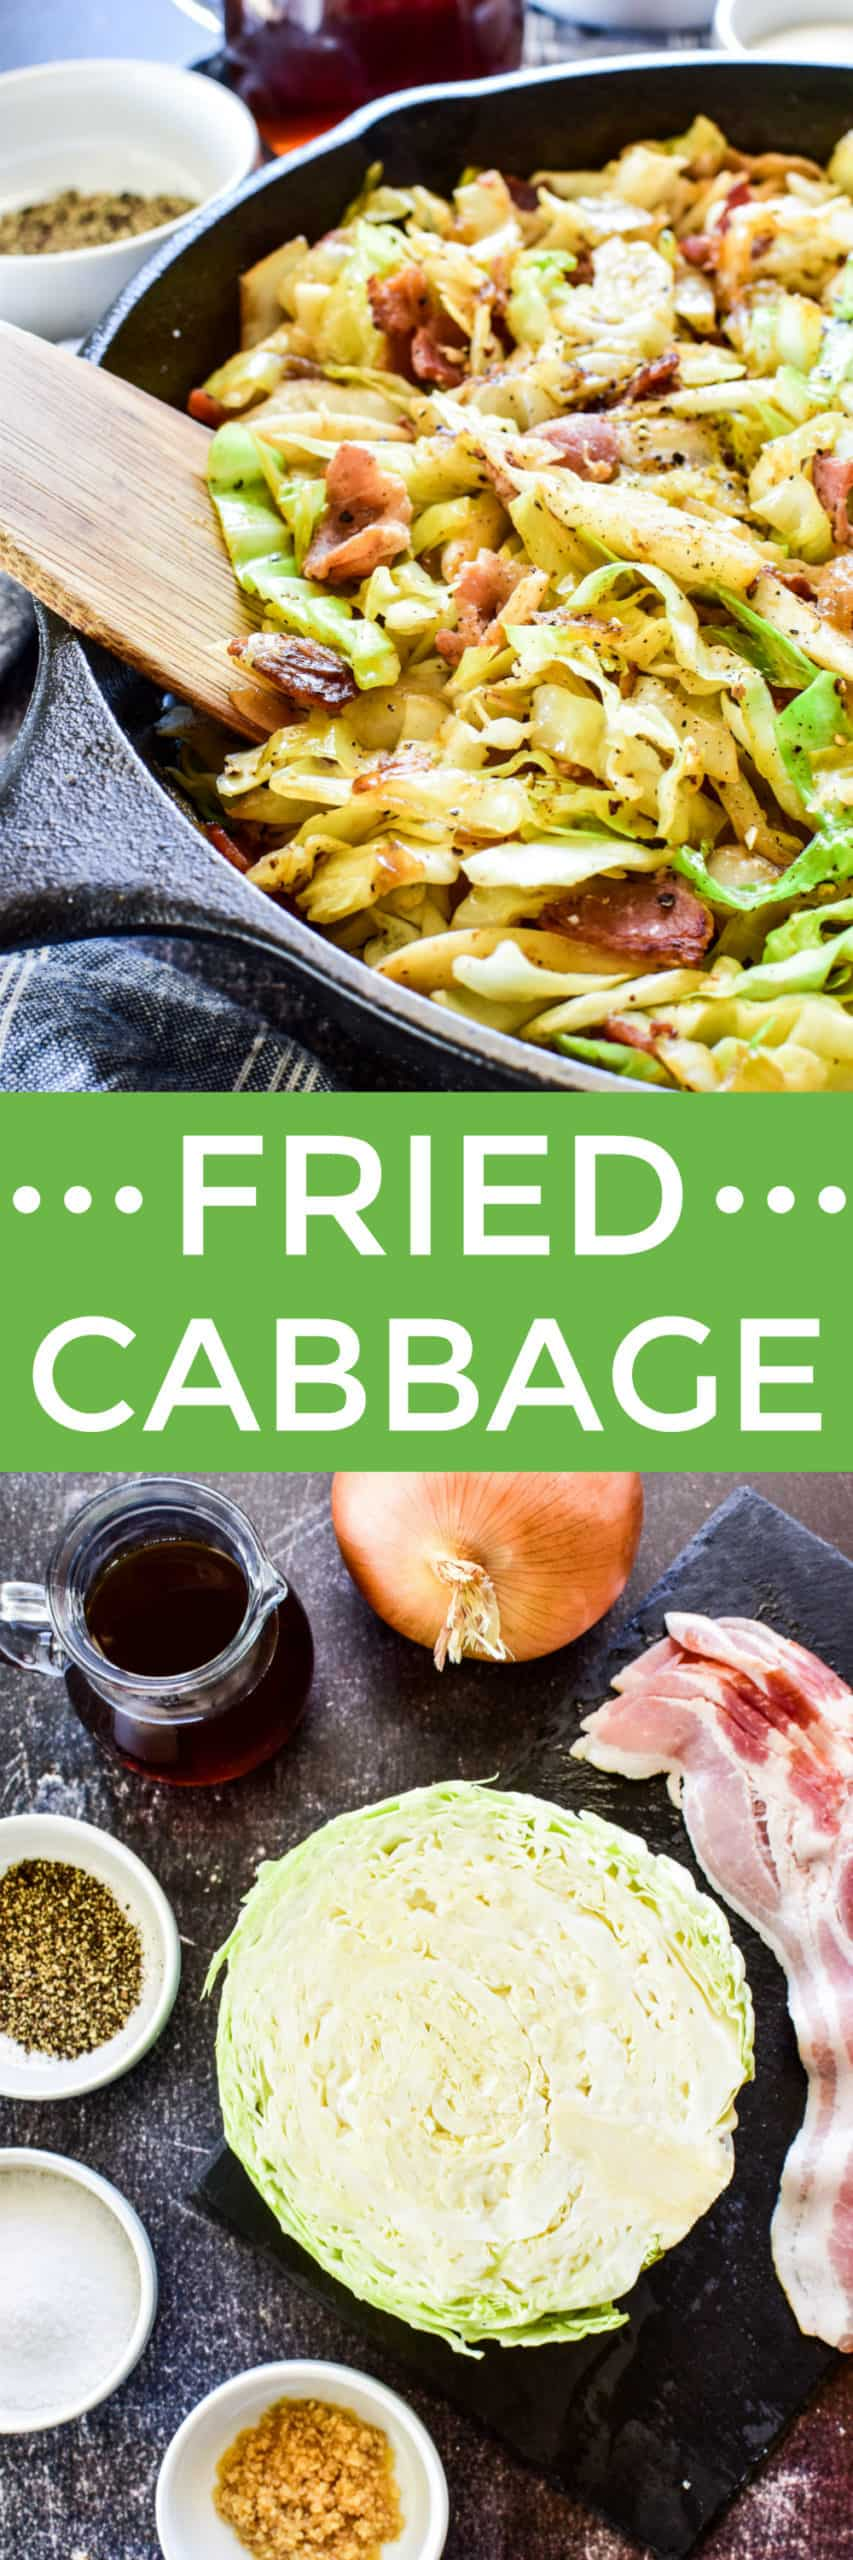 Collage image of Fried Cabbage & ingredients